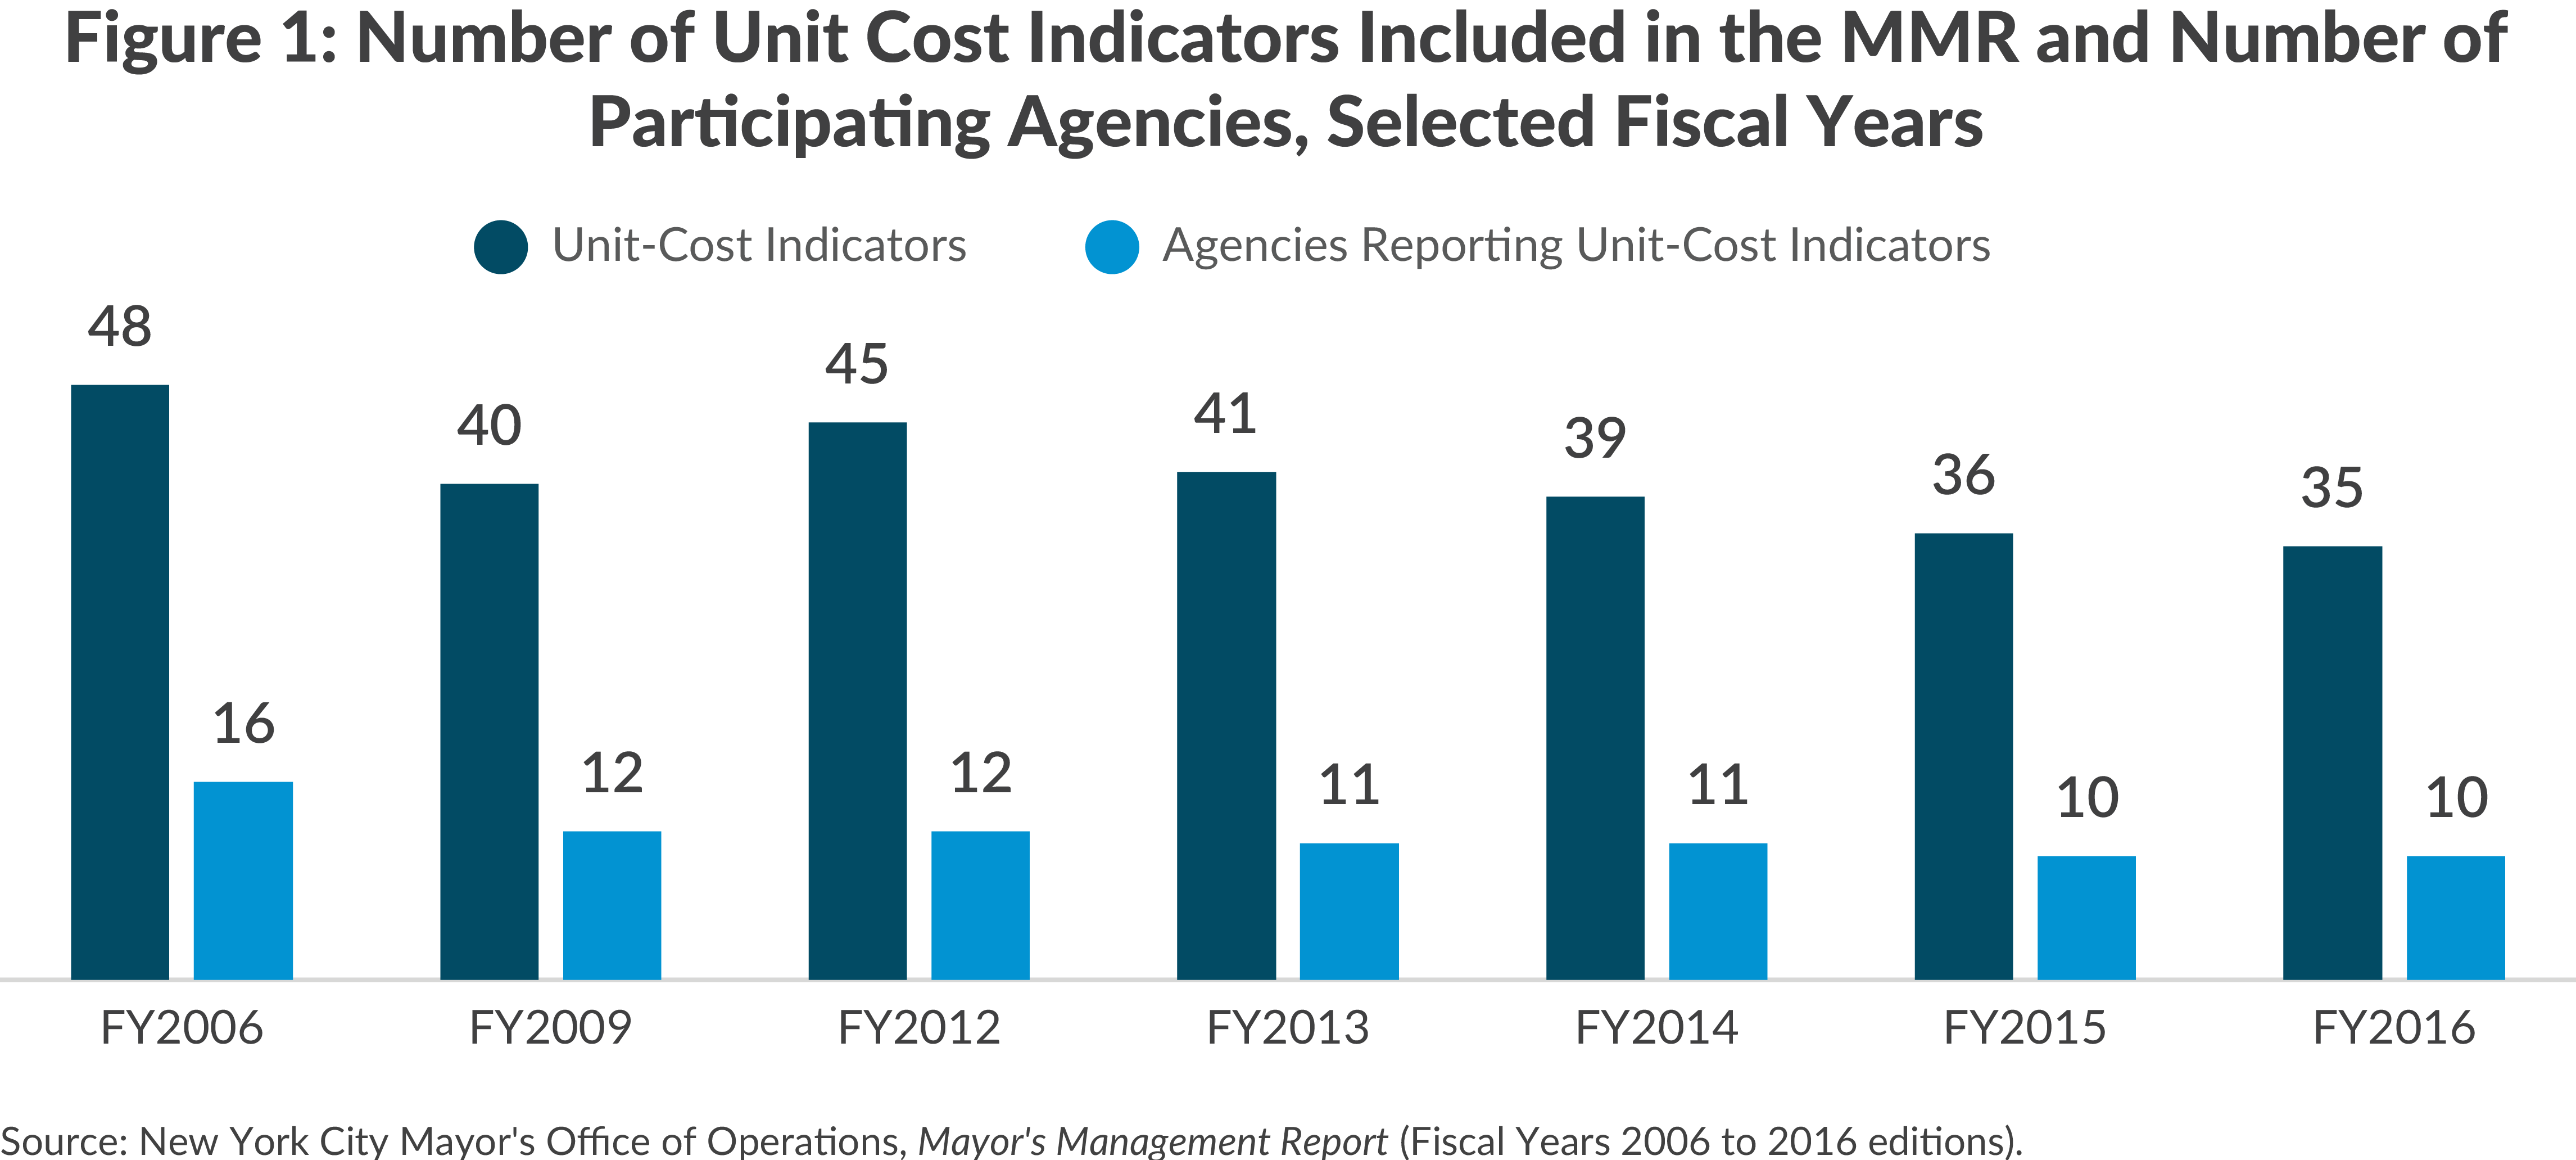 Figure 1: Number of Unit Cost Indicators Included in the MMR and Number of Participating Agencies, Selected Fiscal Years